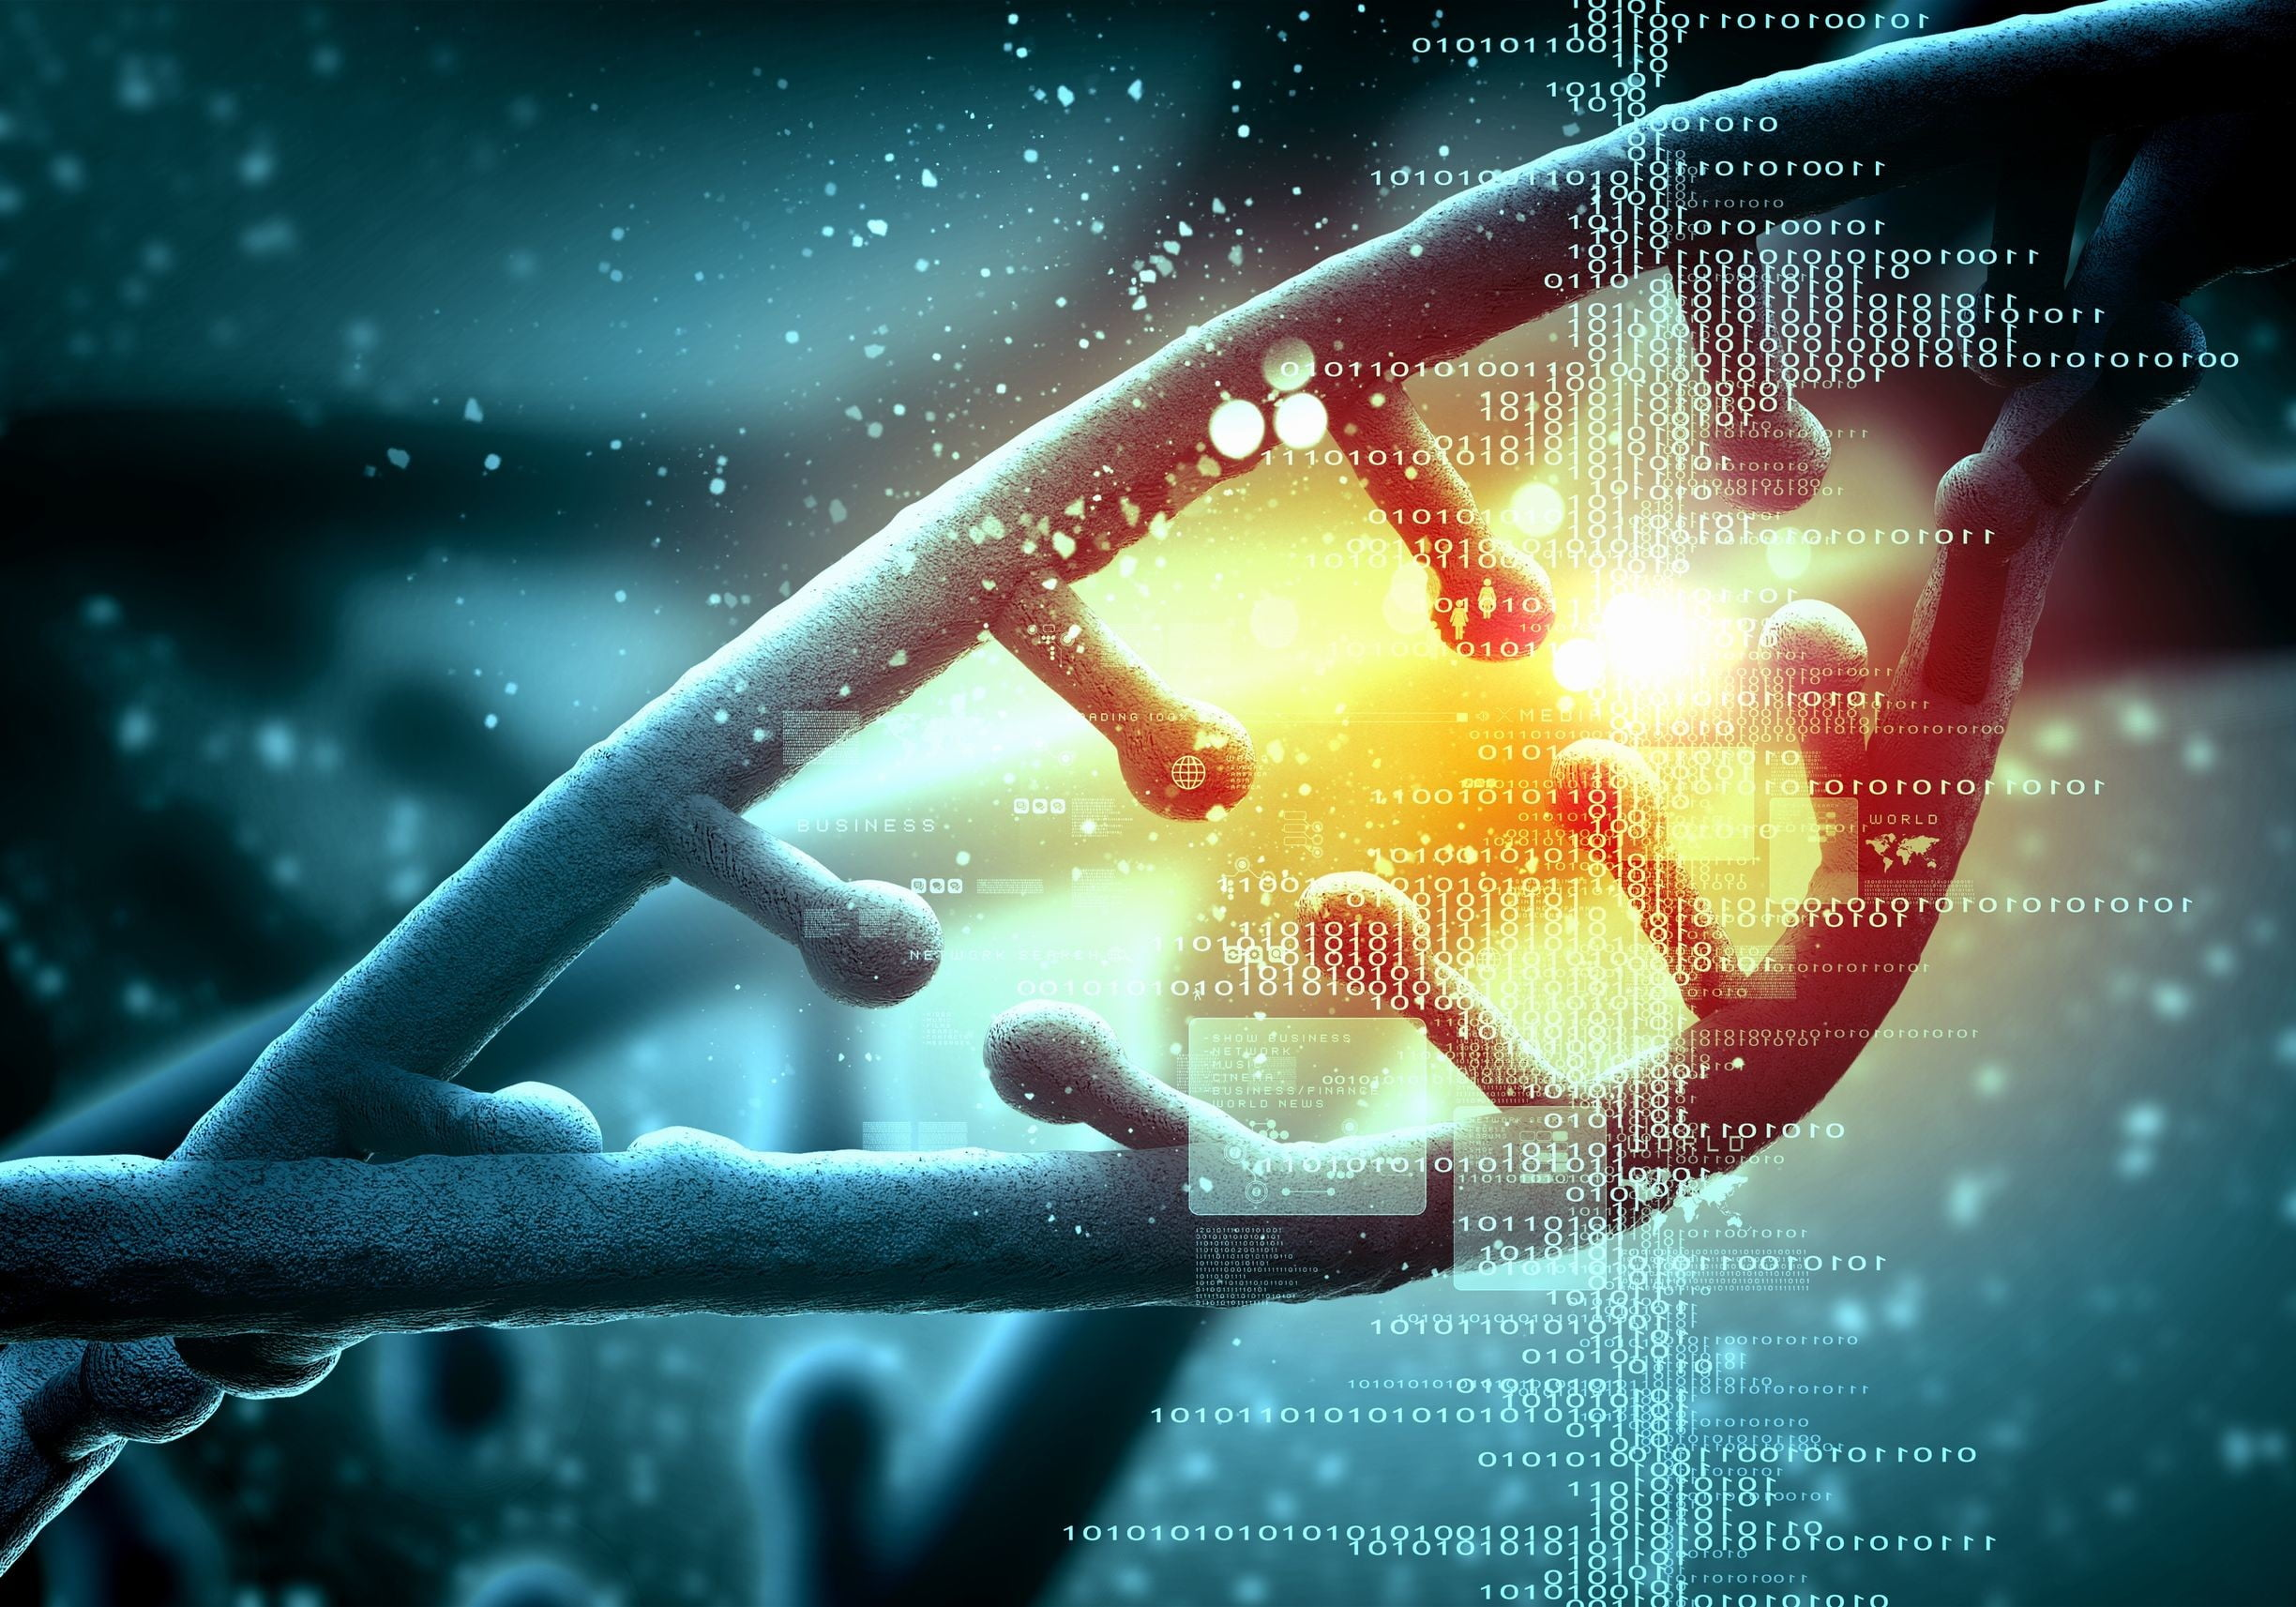 CRISPR 101: A crash course on the gene editing tool that's changing the world